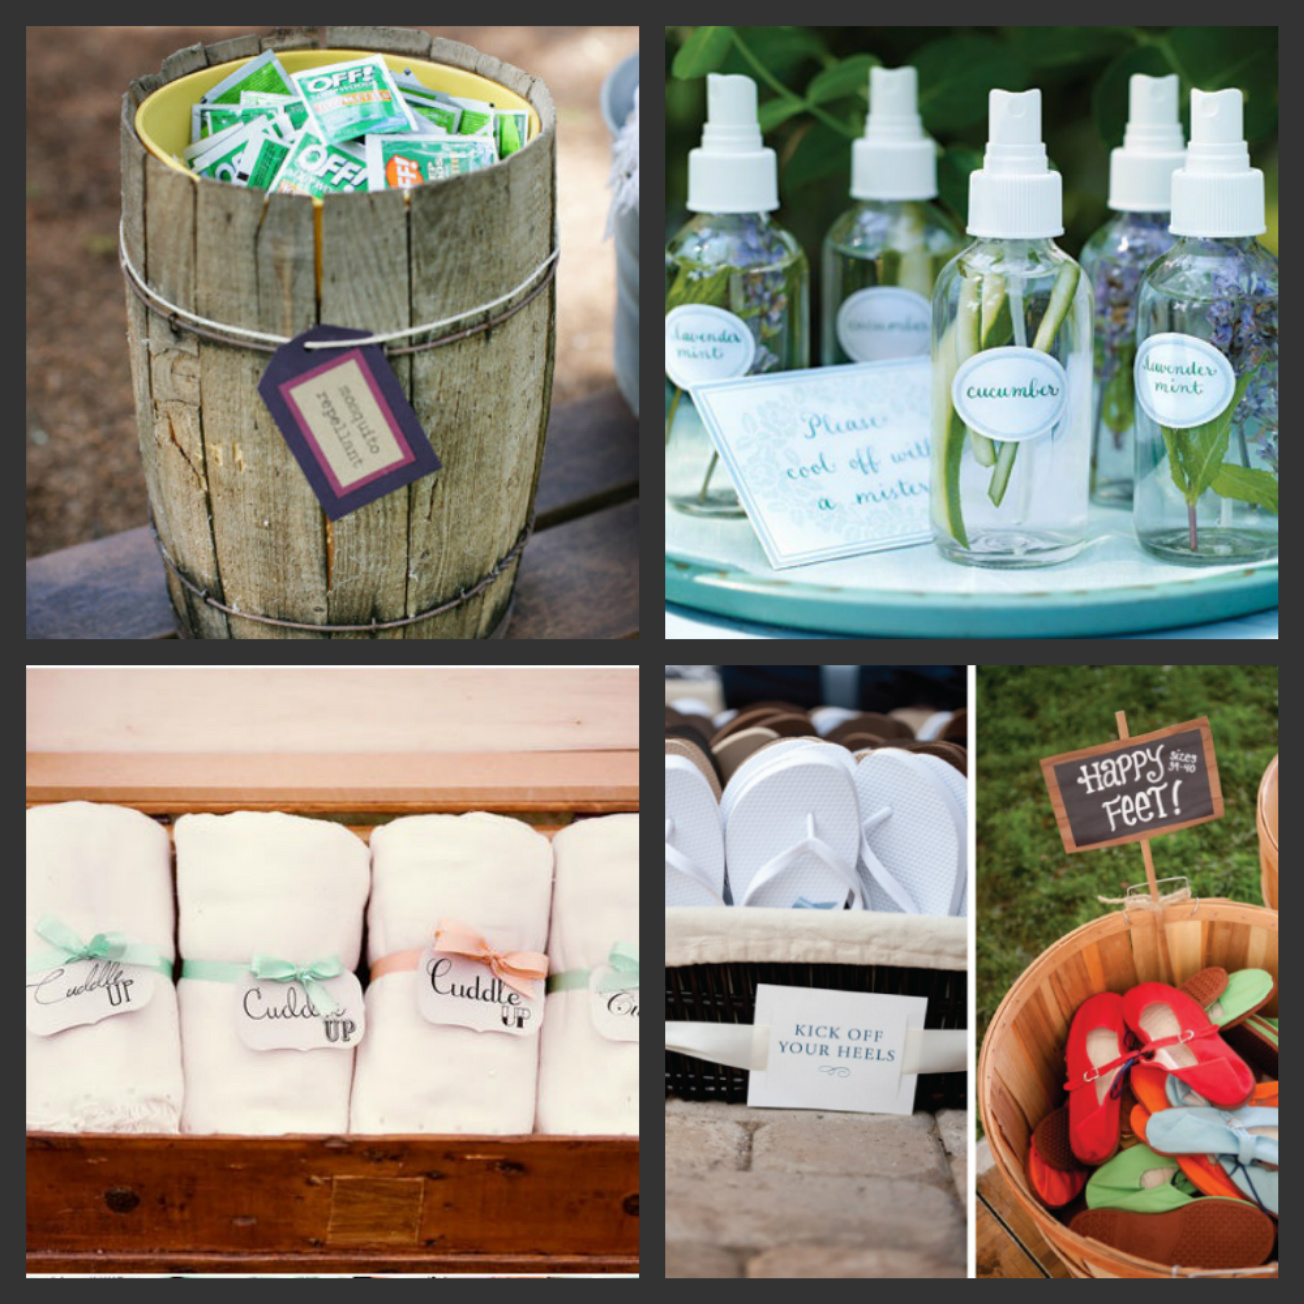 Weddings Are Fun Blog: Thoughtful Touches for Your Outdoor Wedding ...